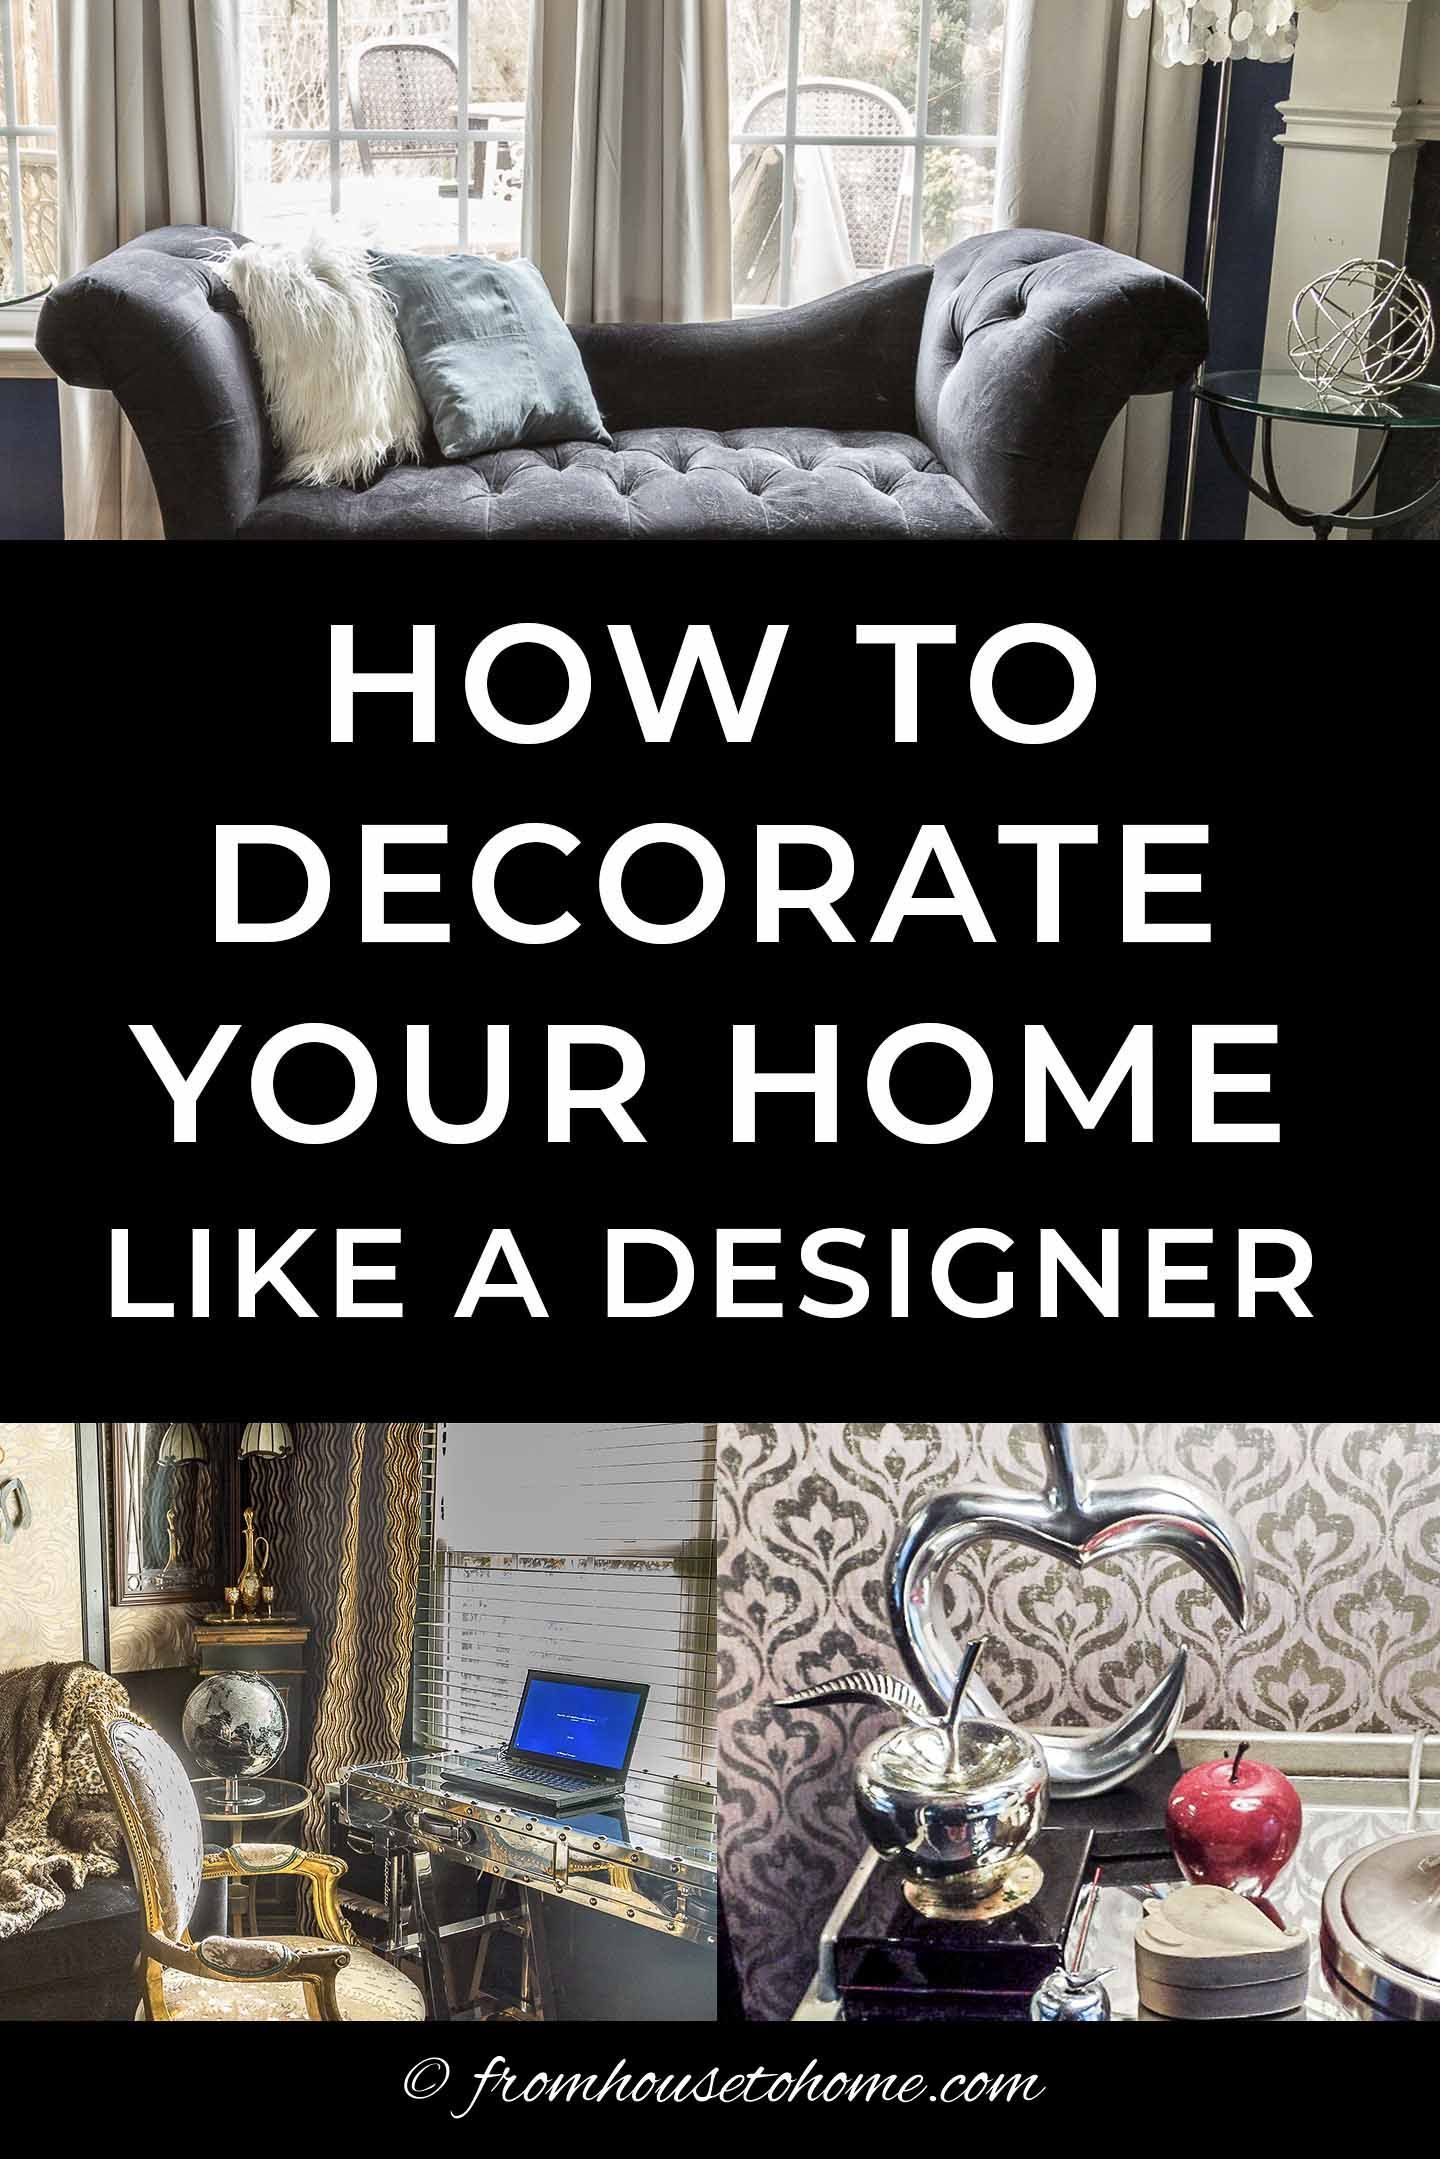 Room Design Ideas How To Decorate Your Home Like A Designer Decorating Your Home Room Design Cottage Bedroom Decor